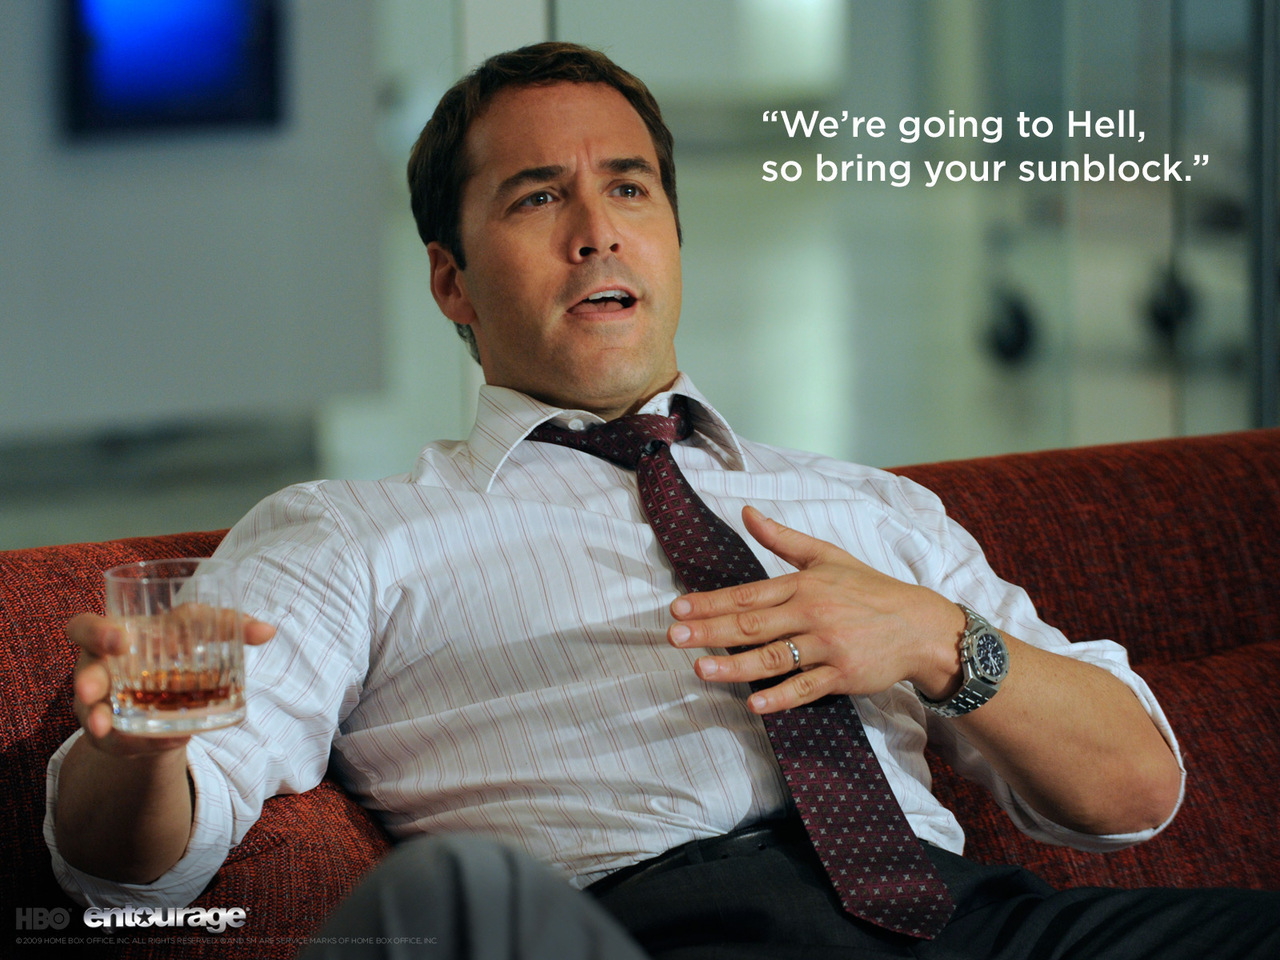 ari-gold-watch-audemars-piguet.jpg